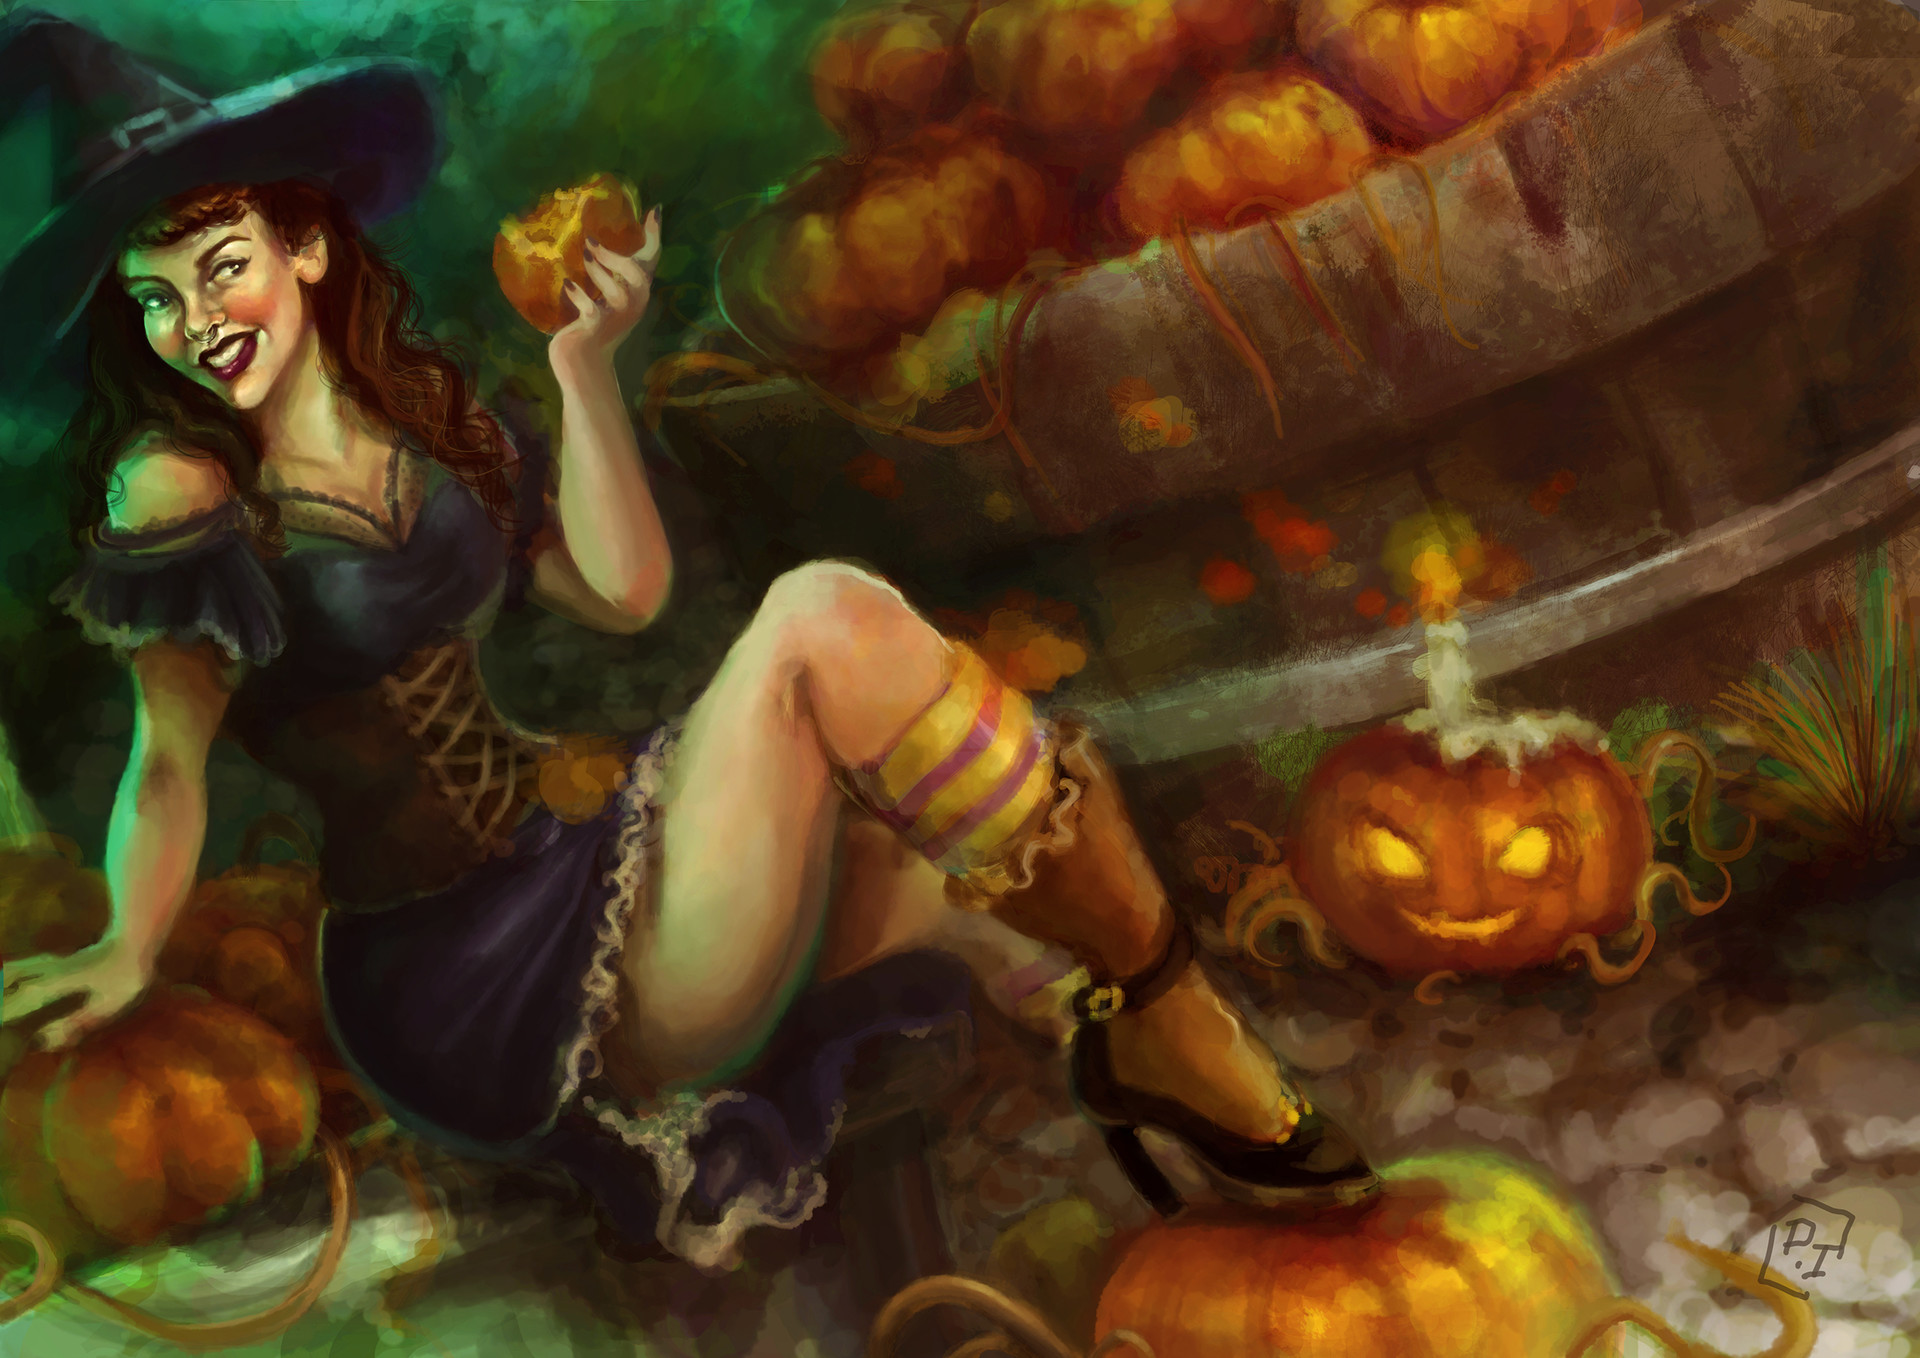 paula isabelle - halloween pin-up witch